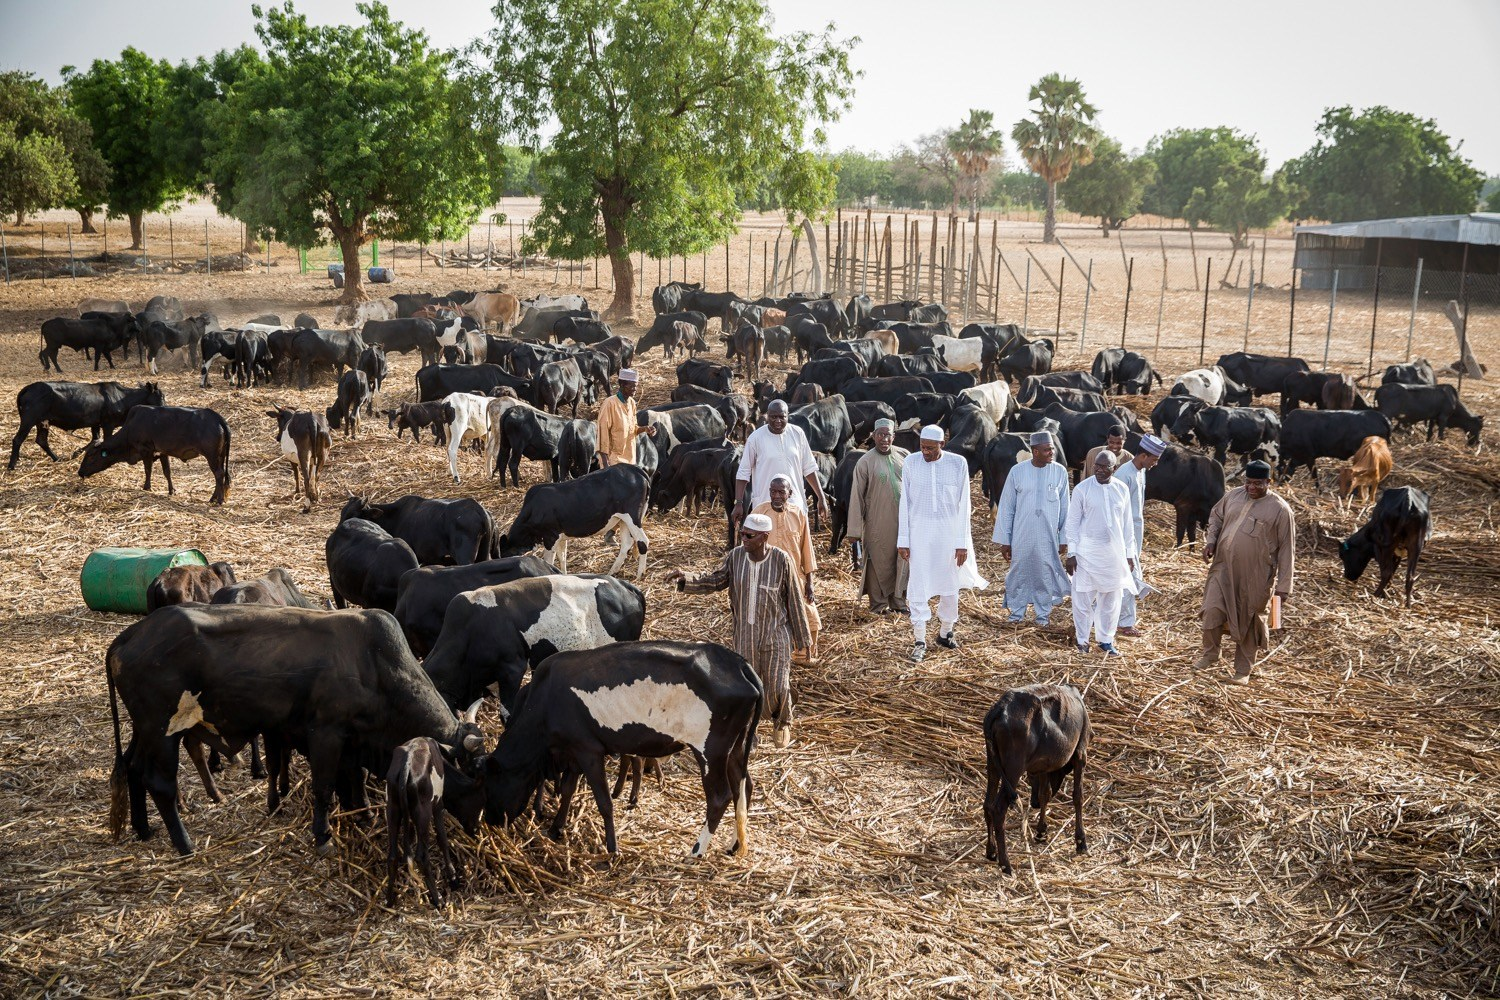 Nigeria's president Buhari may have suspended RUGA project